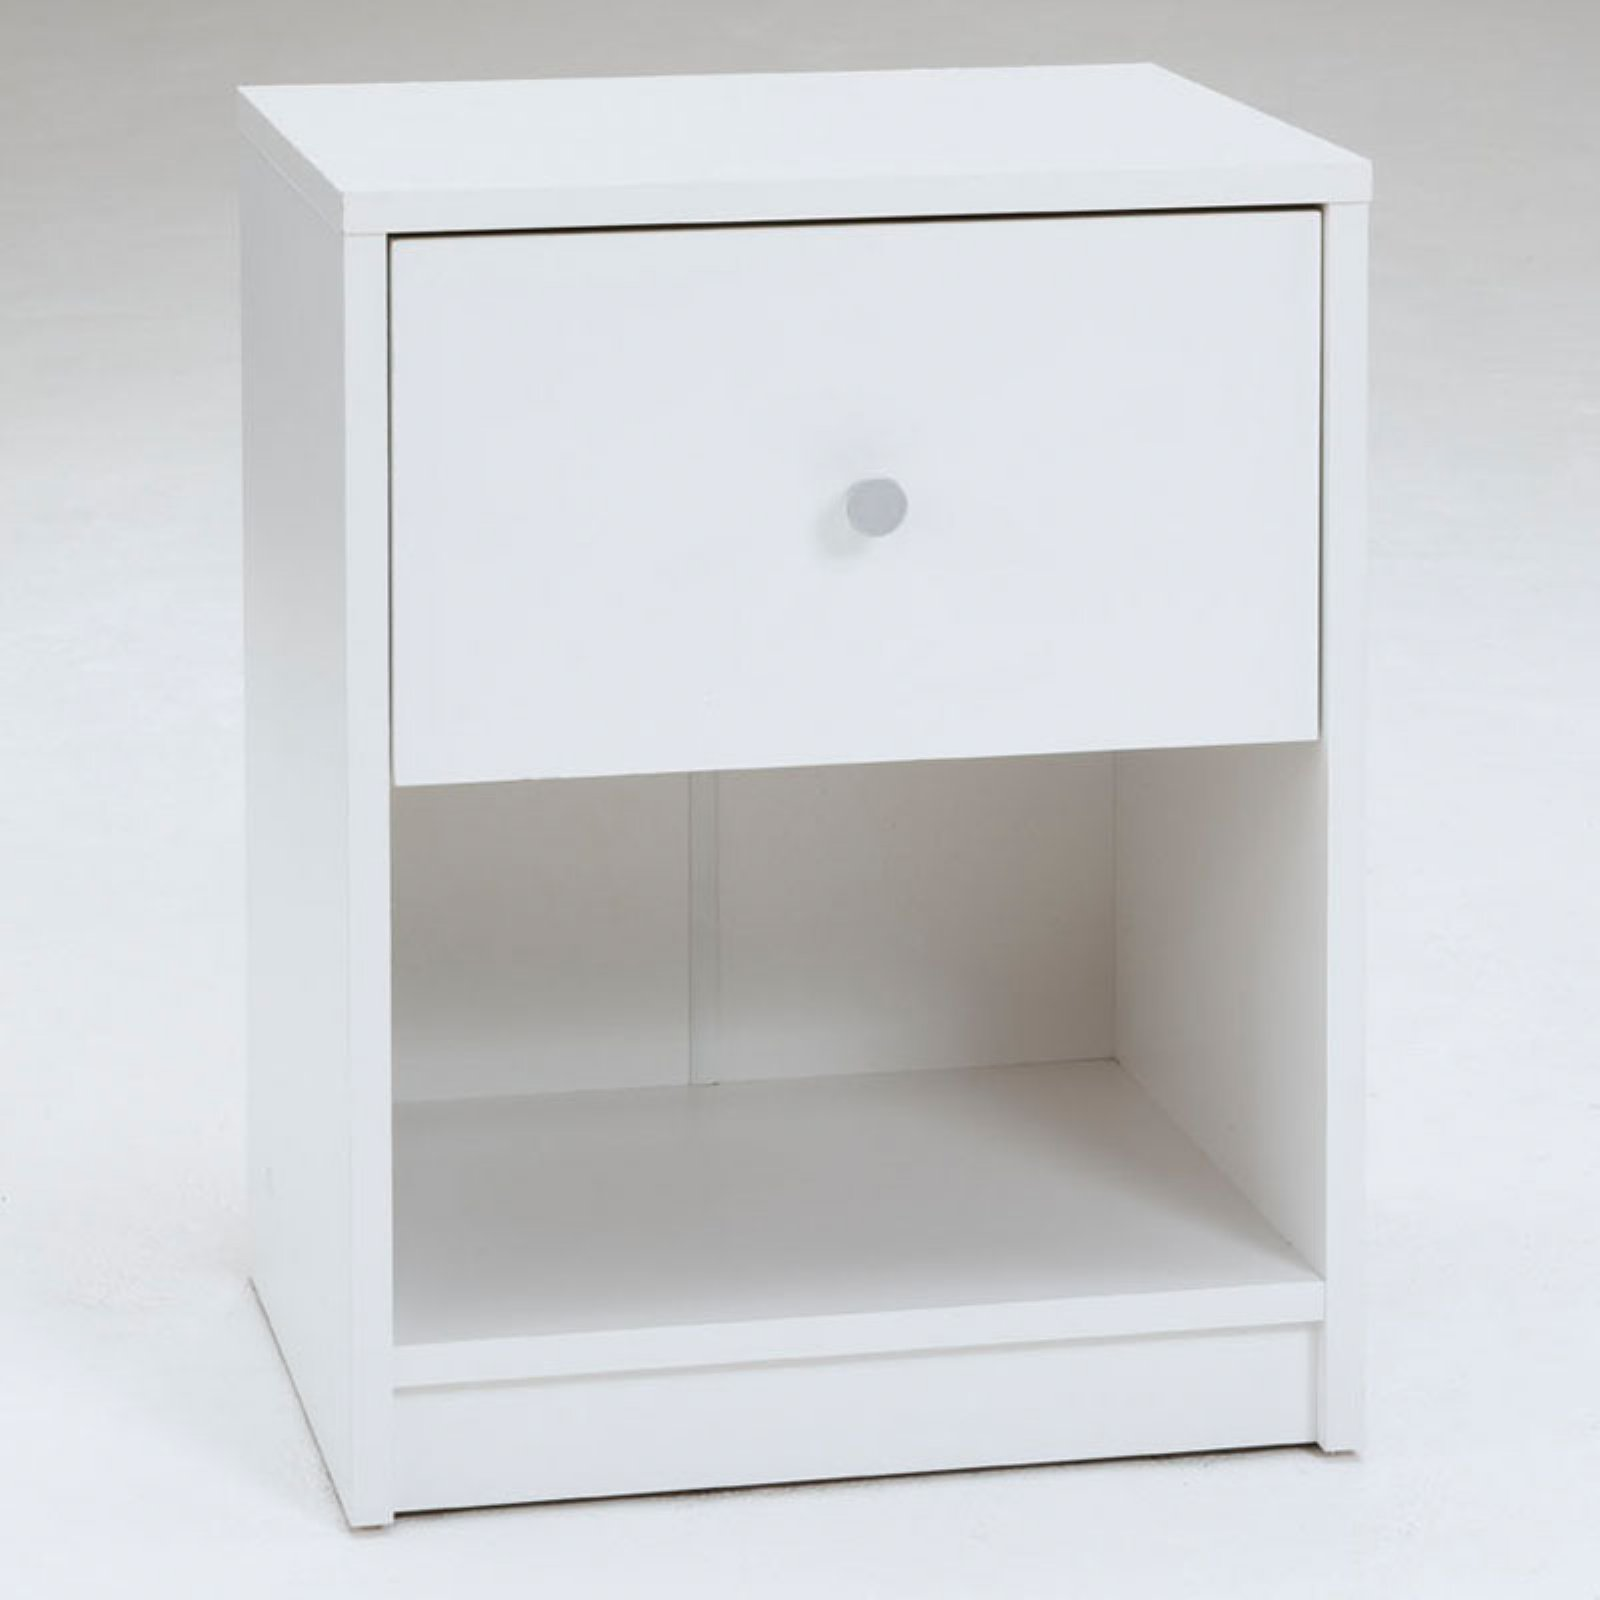 Tvilum Studio Furniture Collection 1 Drawer Nightstand, Multiple Colors by Tvilum